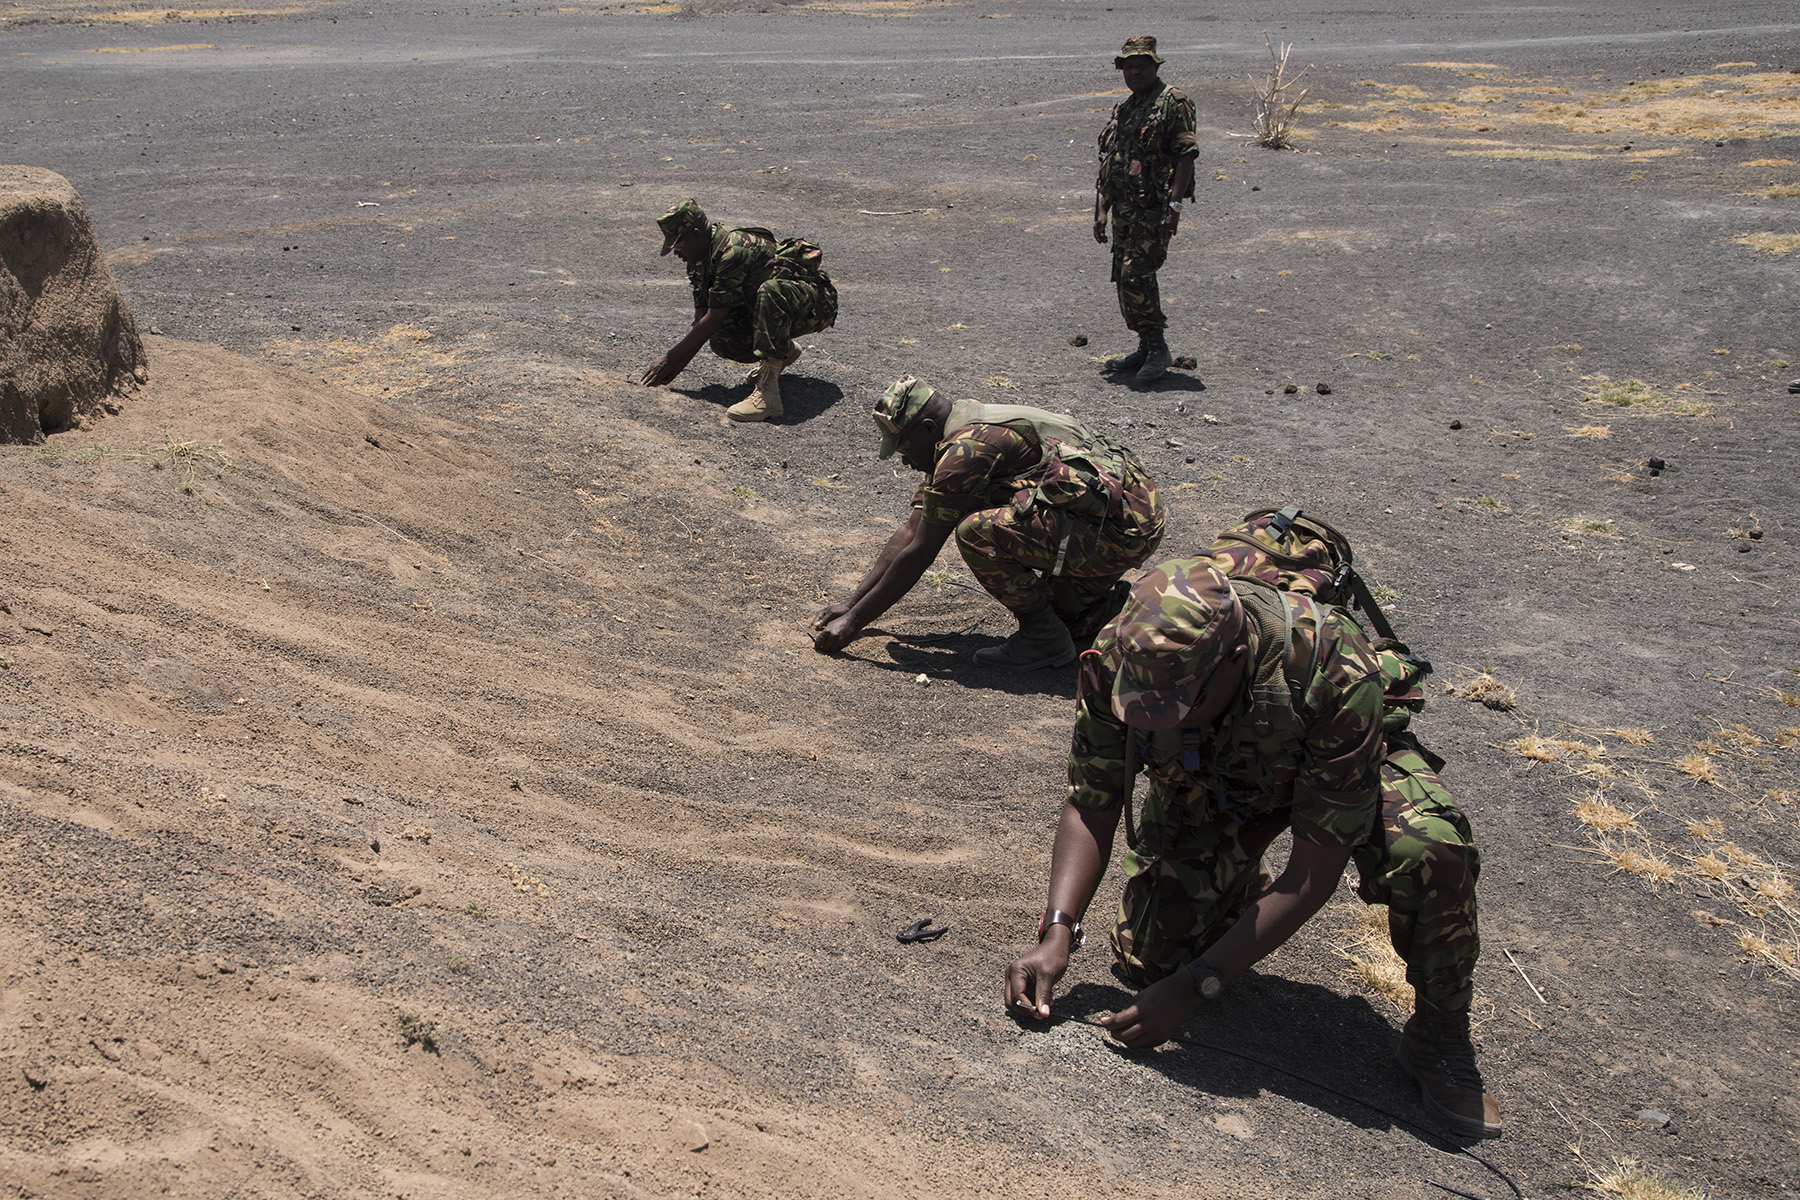 KENYA- Kenya Defense Forces soldiers prepare non-electric demolition charges during Deliberate Kindle 2016 taught by U.S. Navy Sailors from Task Force Sparta, Sept. 19, at a training center in Kenya. Deliberate Kindle 2016 is taught by U.S. Navy explosive ordnance disposal technicians and a dive independent duty corpsman assigned to Combined Joint Task Force-Horn of Africa.  It is a four-week Humanitarian Mine Action course designed to provide training in countering improvised explosive devices and unexploded ordnance, medical, and train-the-trainer skills to approximately 53 KDF soldiers in preparation for future deployments with the African Union Mission in Somalia. (U.S. Air Force photo by Staff Sgt. Tiffany DeNault)